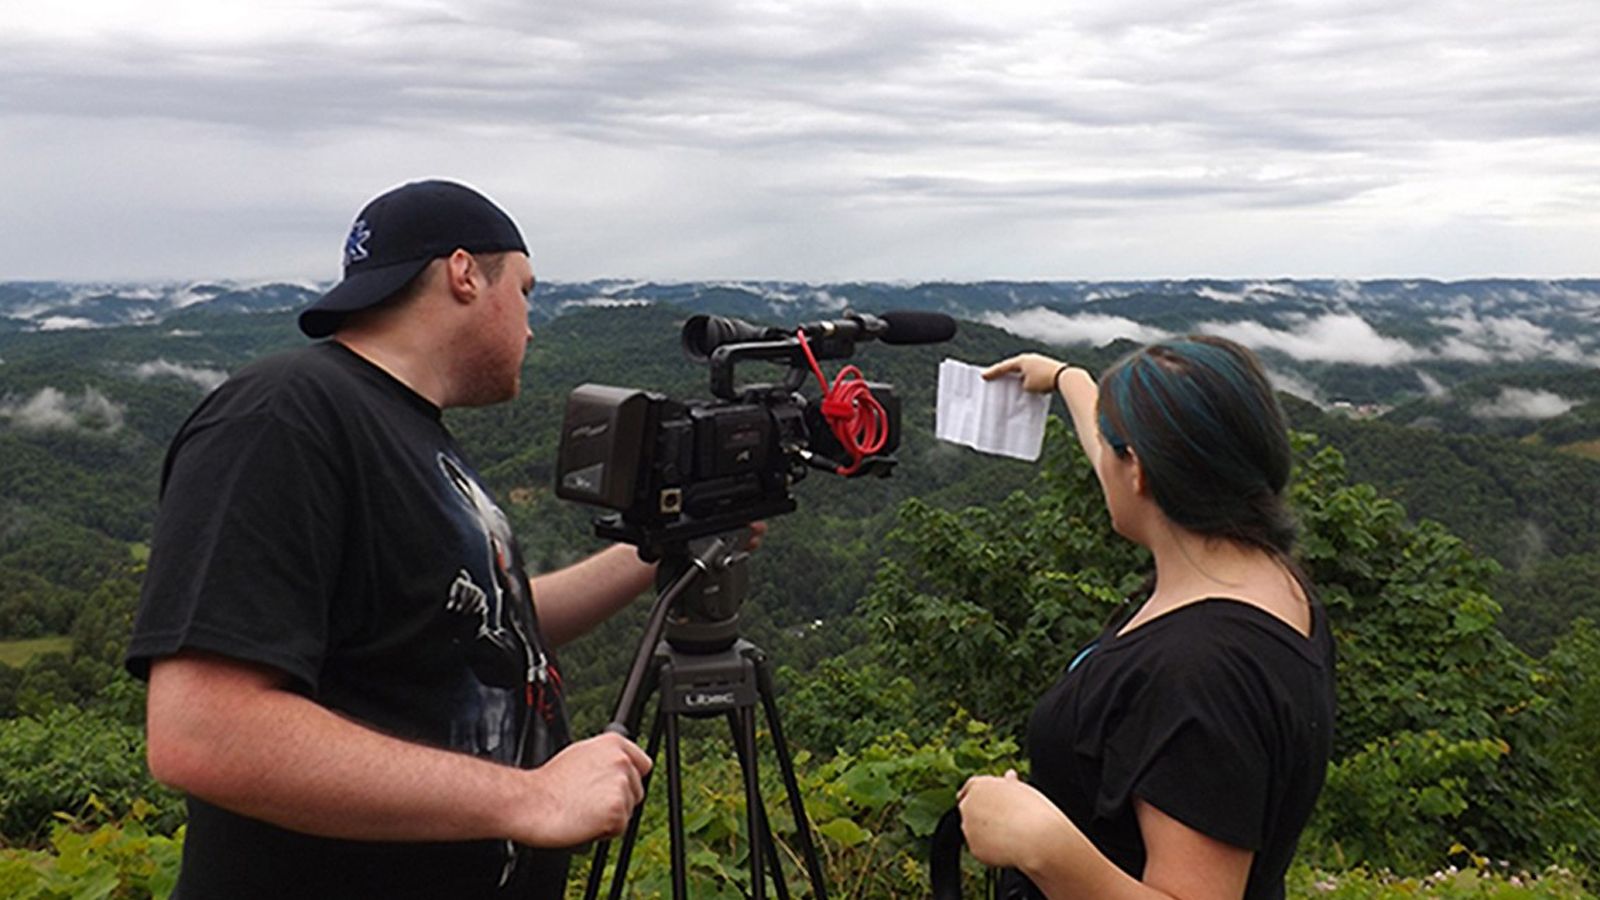 On the left, a man dressed in a backward black baseball cap and t-shirt on the left uses a video camera on a tripod and a woman on the right with blue-streaked dark hair and in a black t-shirt holds a piece of paper in front of the videocamera lens. In the background are green trees and darker green hills with clouds nestled among them.